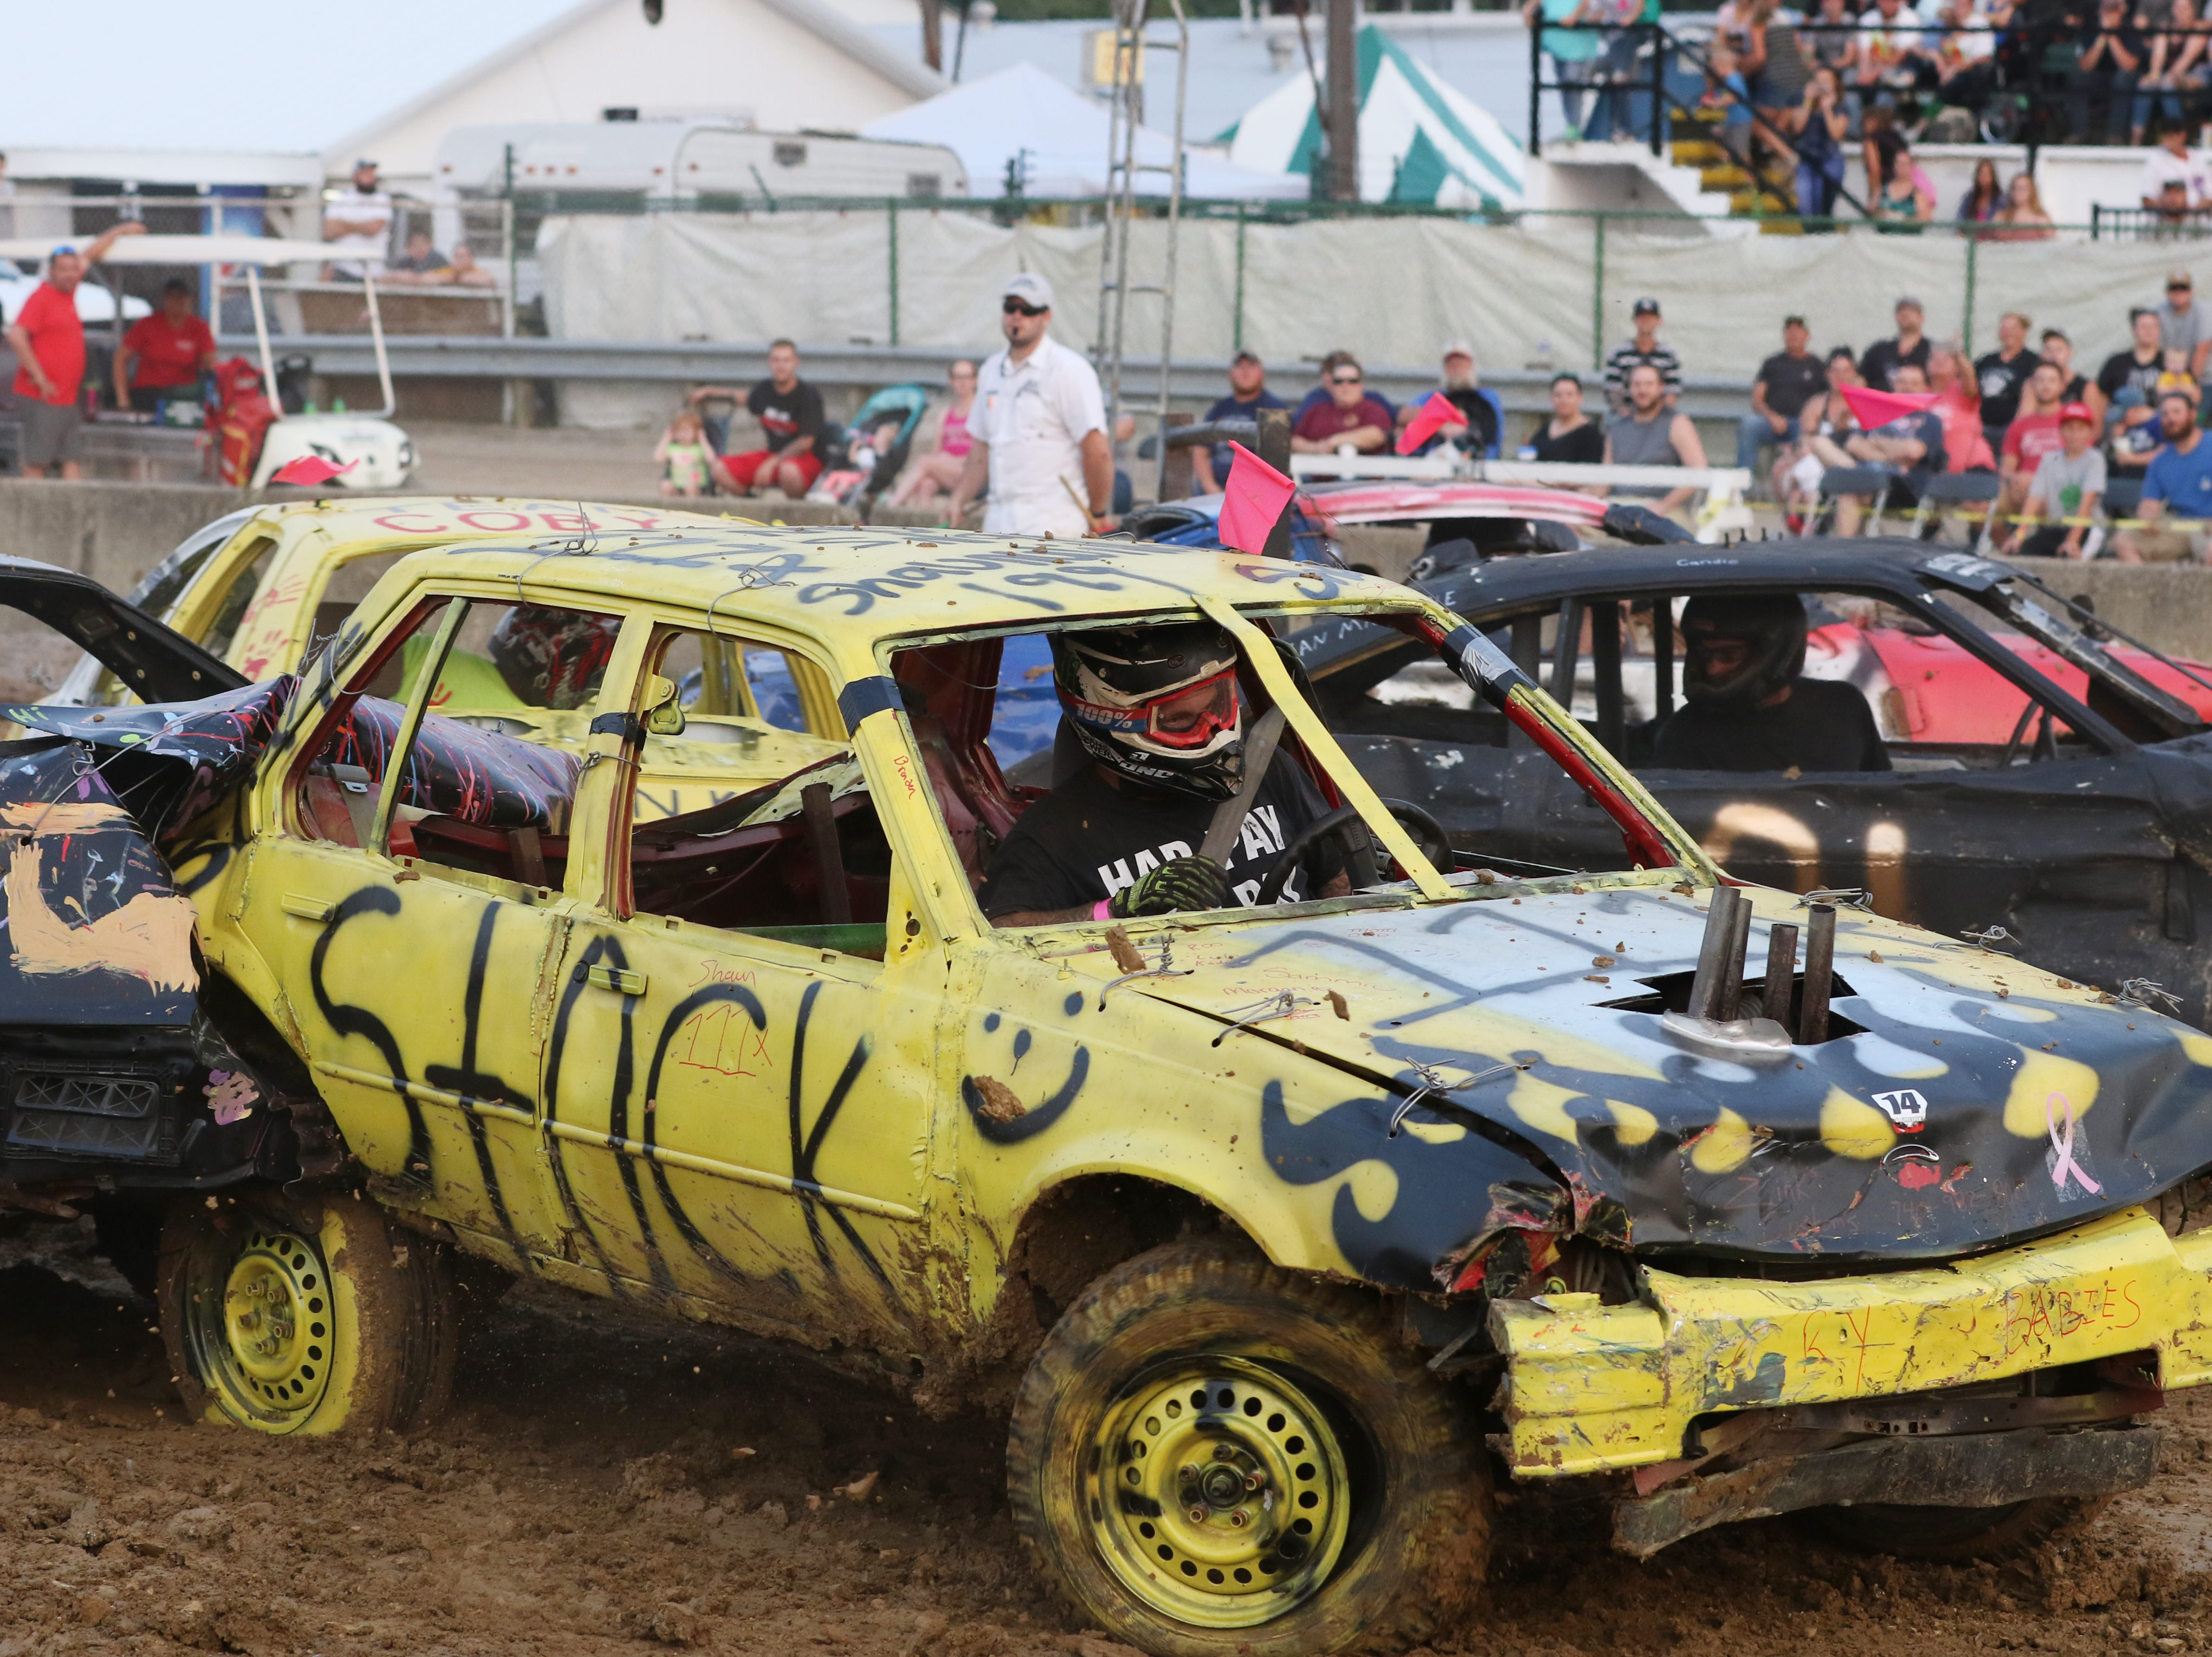 Cars collide during the Sarge and Sons Demolition Derby at the Muskingum County Fair on Tuesday.